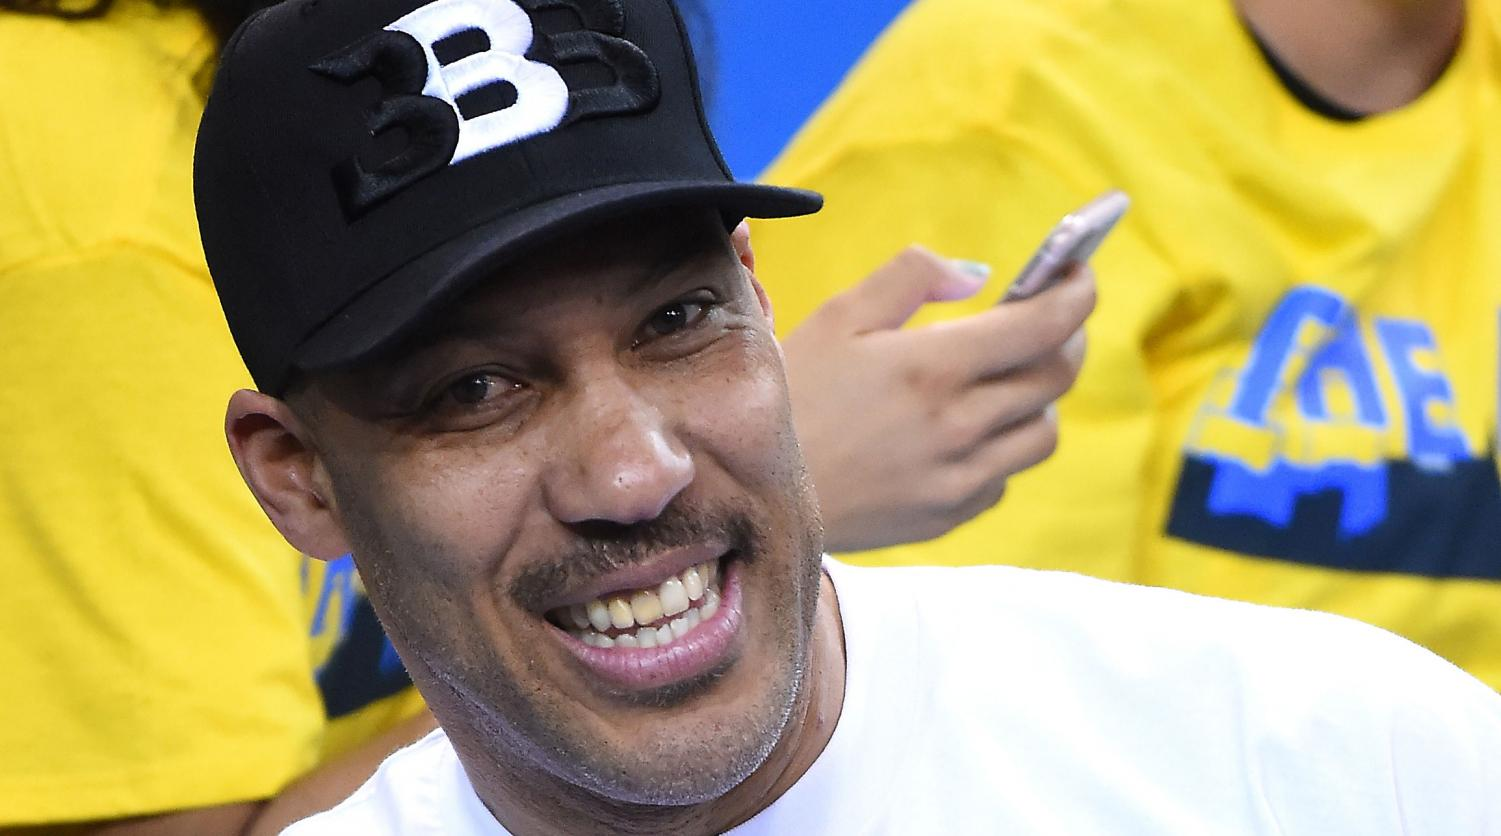 LaVar Ball, who has made many outrageous comments.